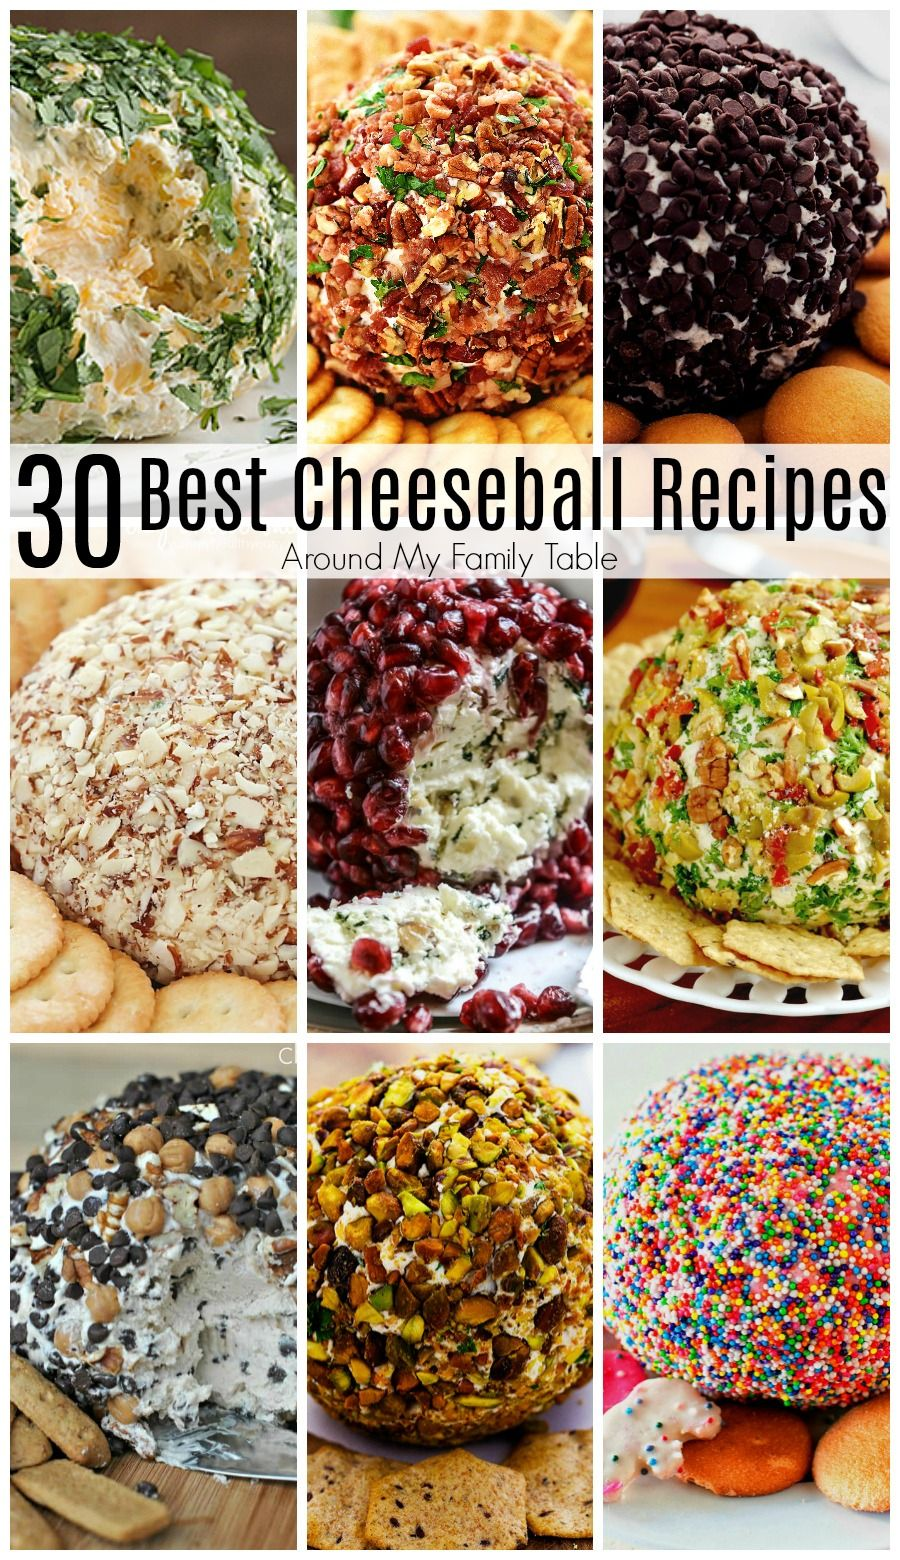 The Best Cheeseball Recipes #appetizersforparty